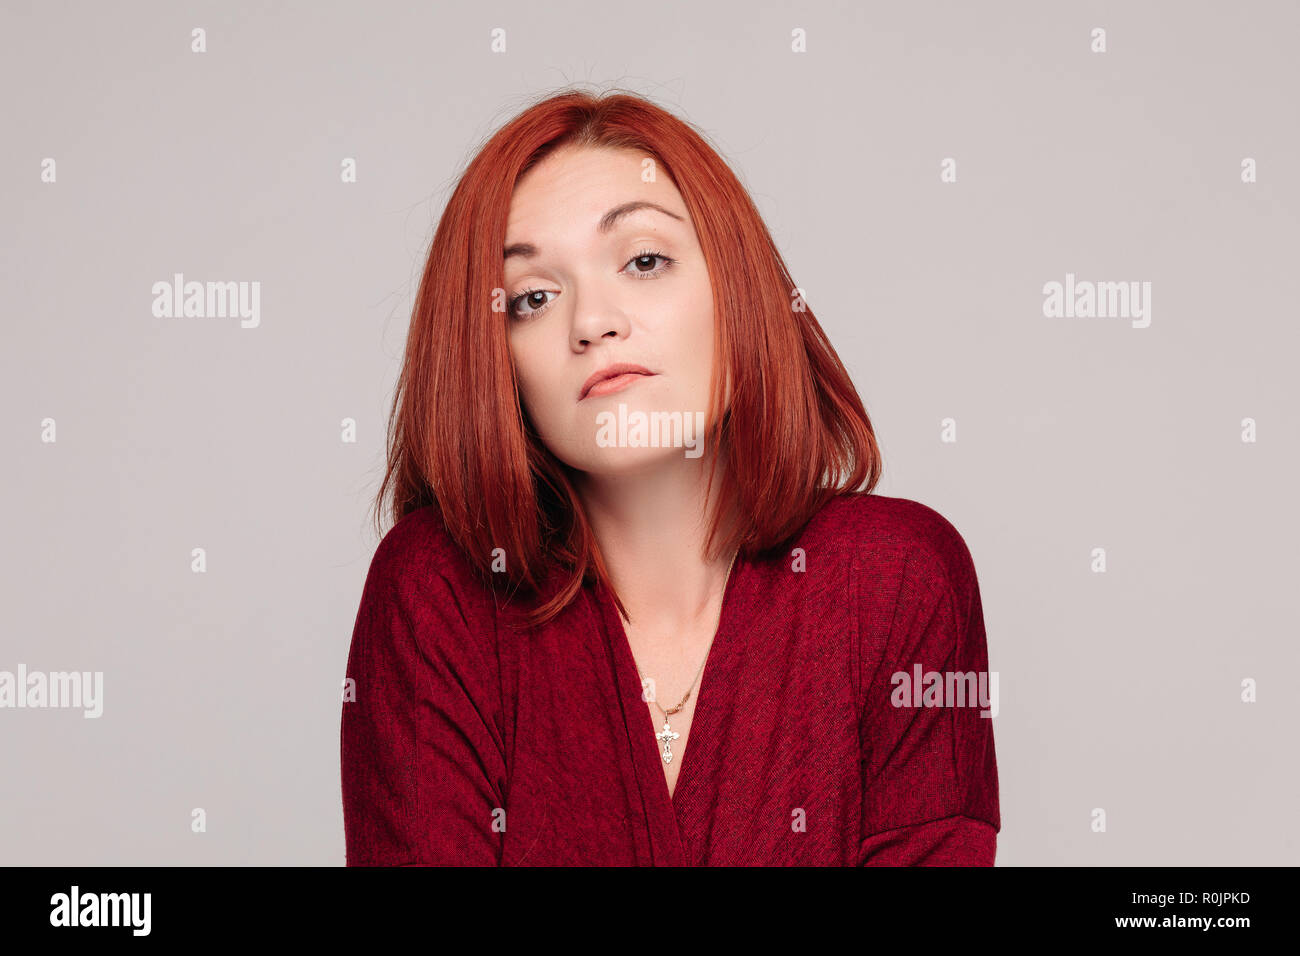 Business woman wearing in red having passive emotion and looking frustrated. - Stock Image